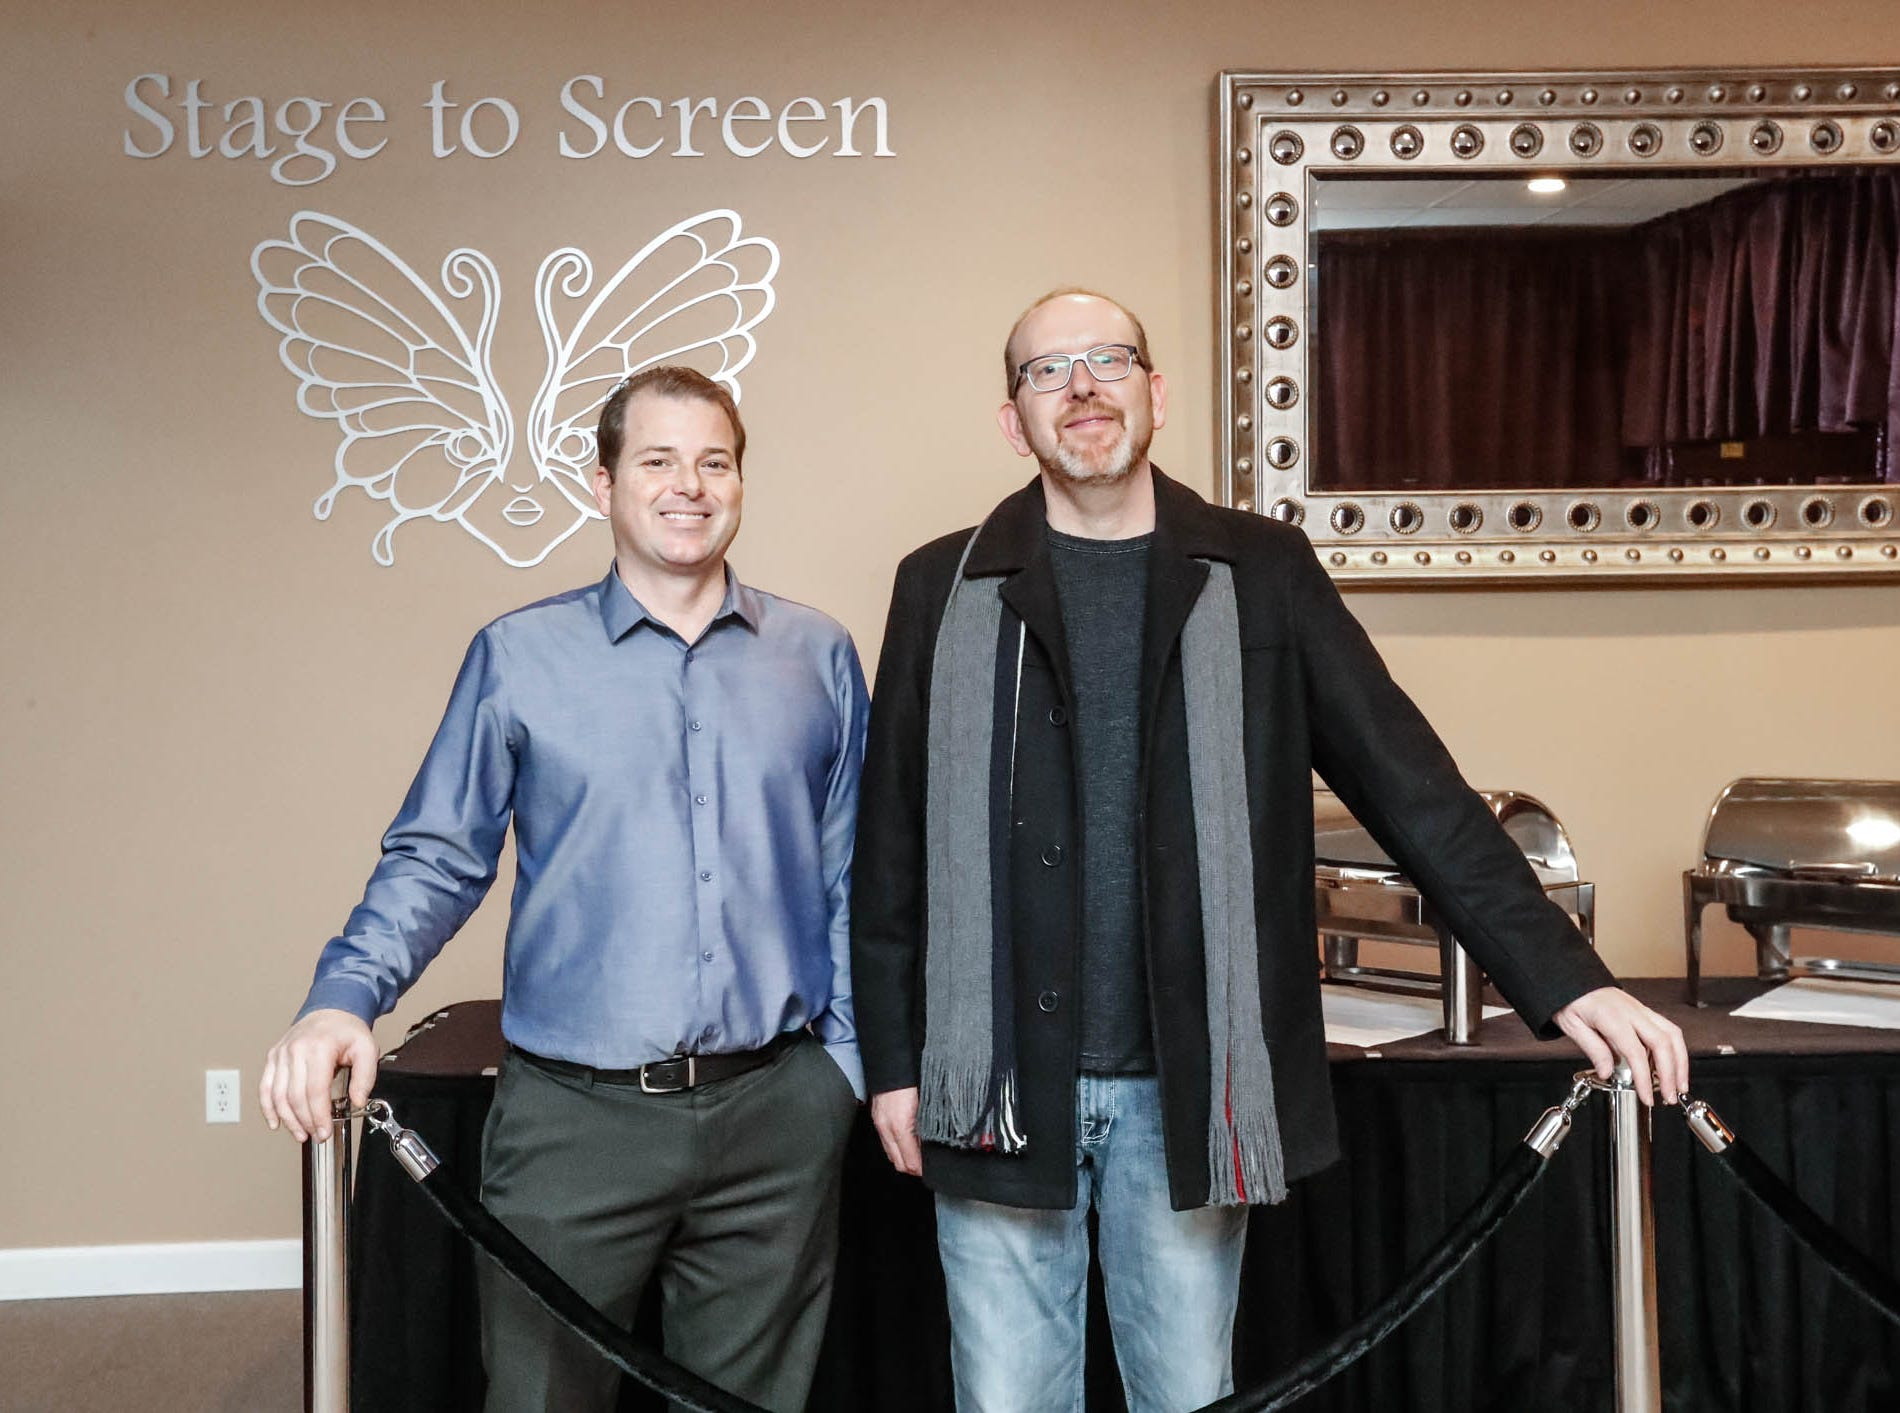 Grafton Peek Catering Owner Jason West, left, and Chef Charles Bryant stand in front of the buffet line at the Stage To Screen's Catered Cabaret Theatre, 350 S. Madison Ave., Greenwood Ind. on Thursday, Jan. 17, 2019. The theatre was initially named Stage To Screen Studios but has since evolved into the Cabaret Dinner Theatre.